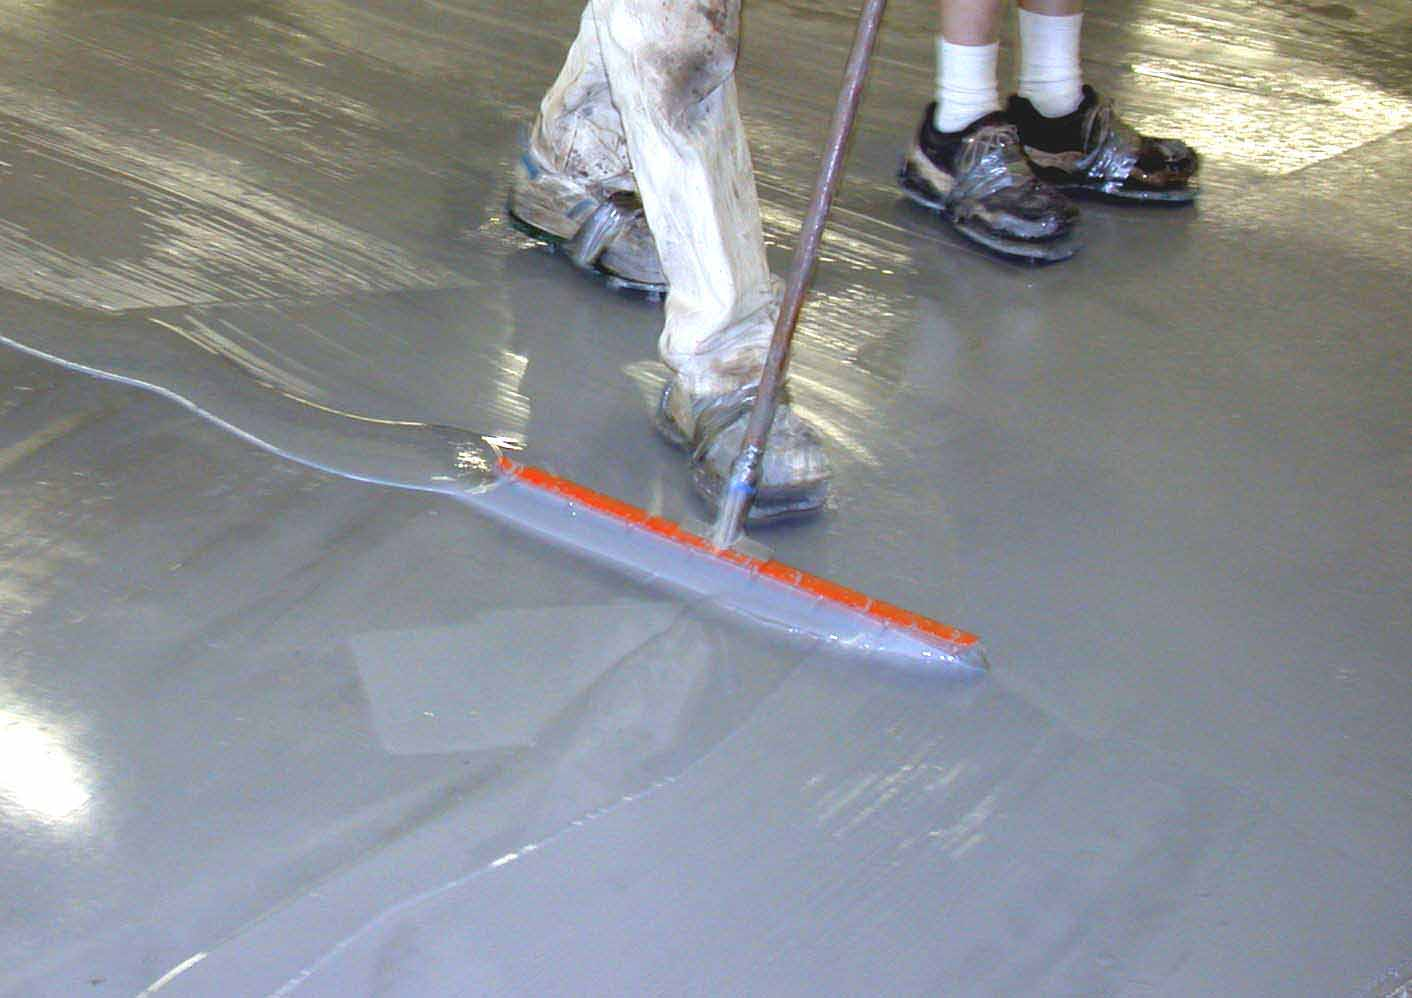 Epoxy Floor Coating For Garage Floors Garage Innovations - Epoxy floor coating over asbestos tile